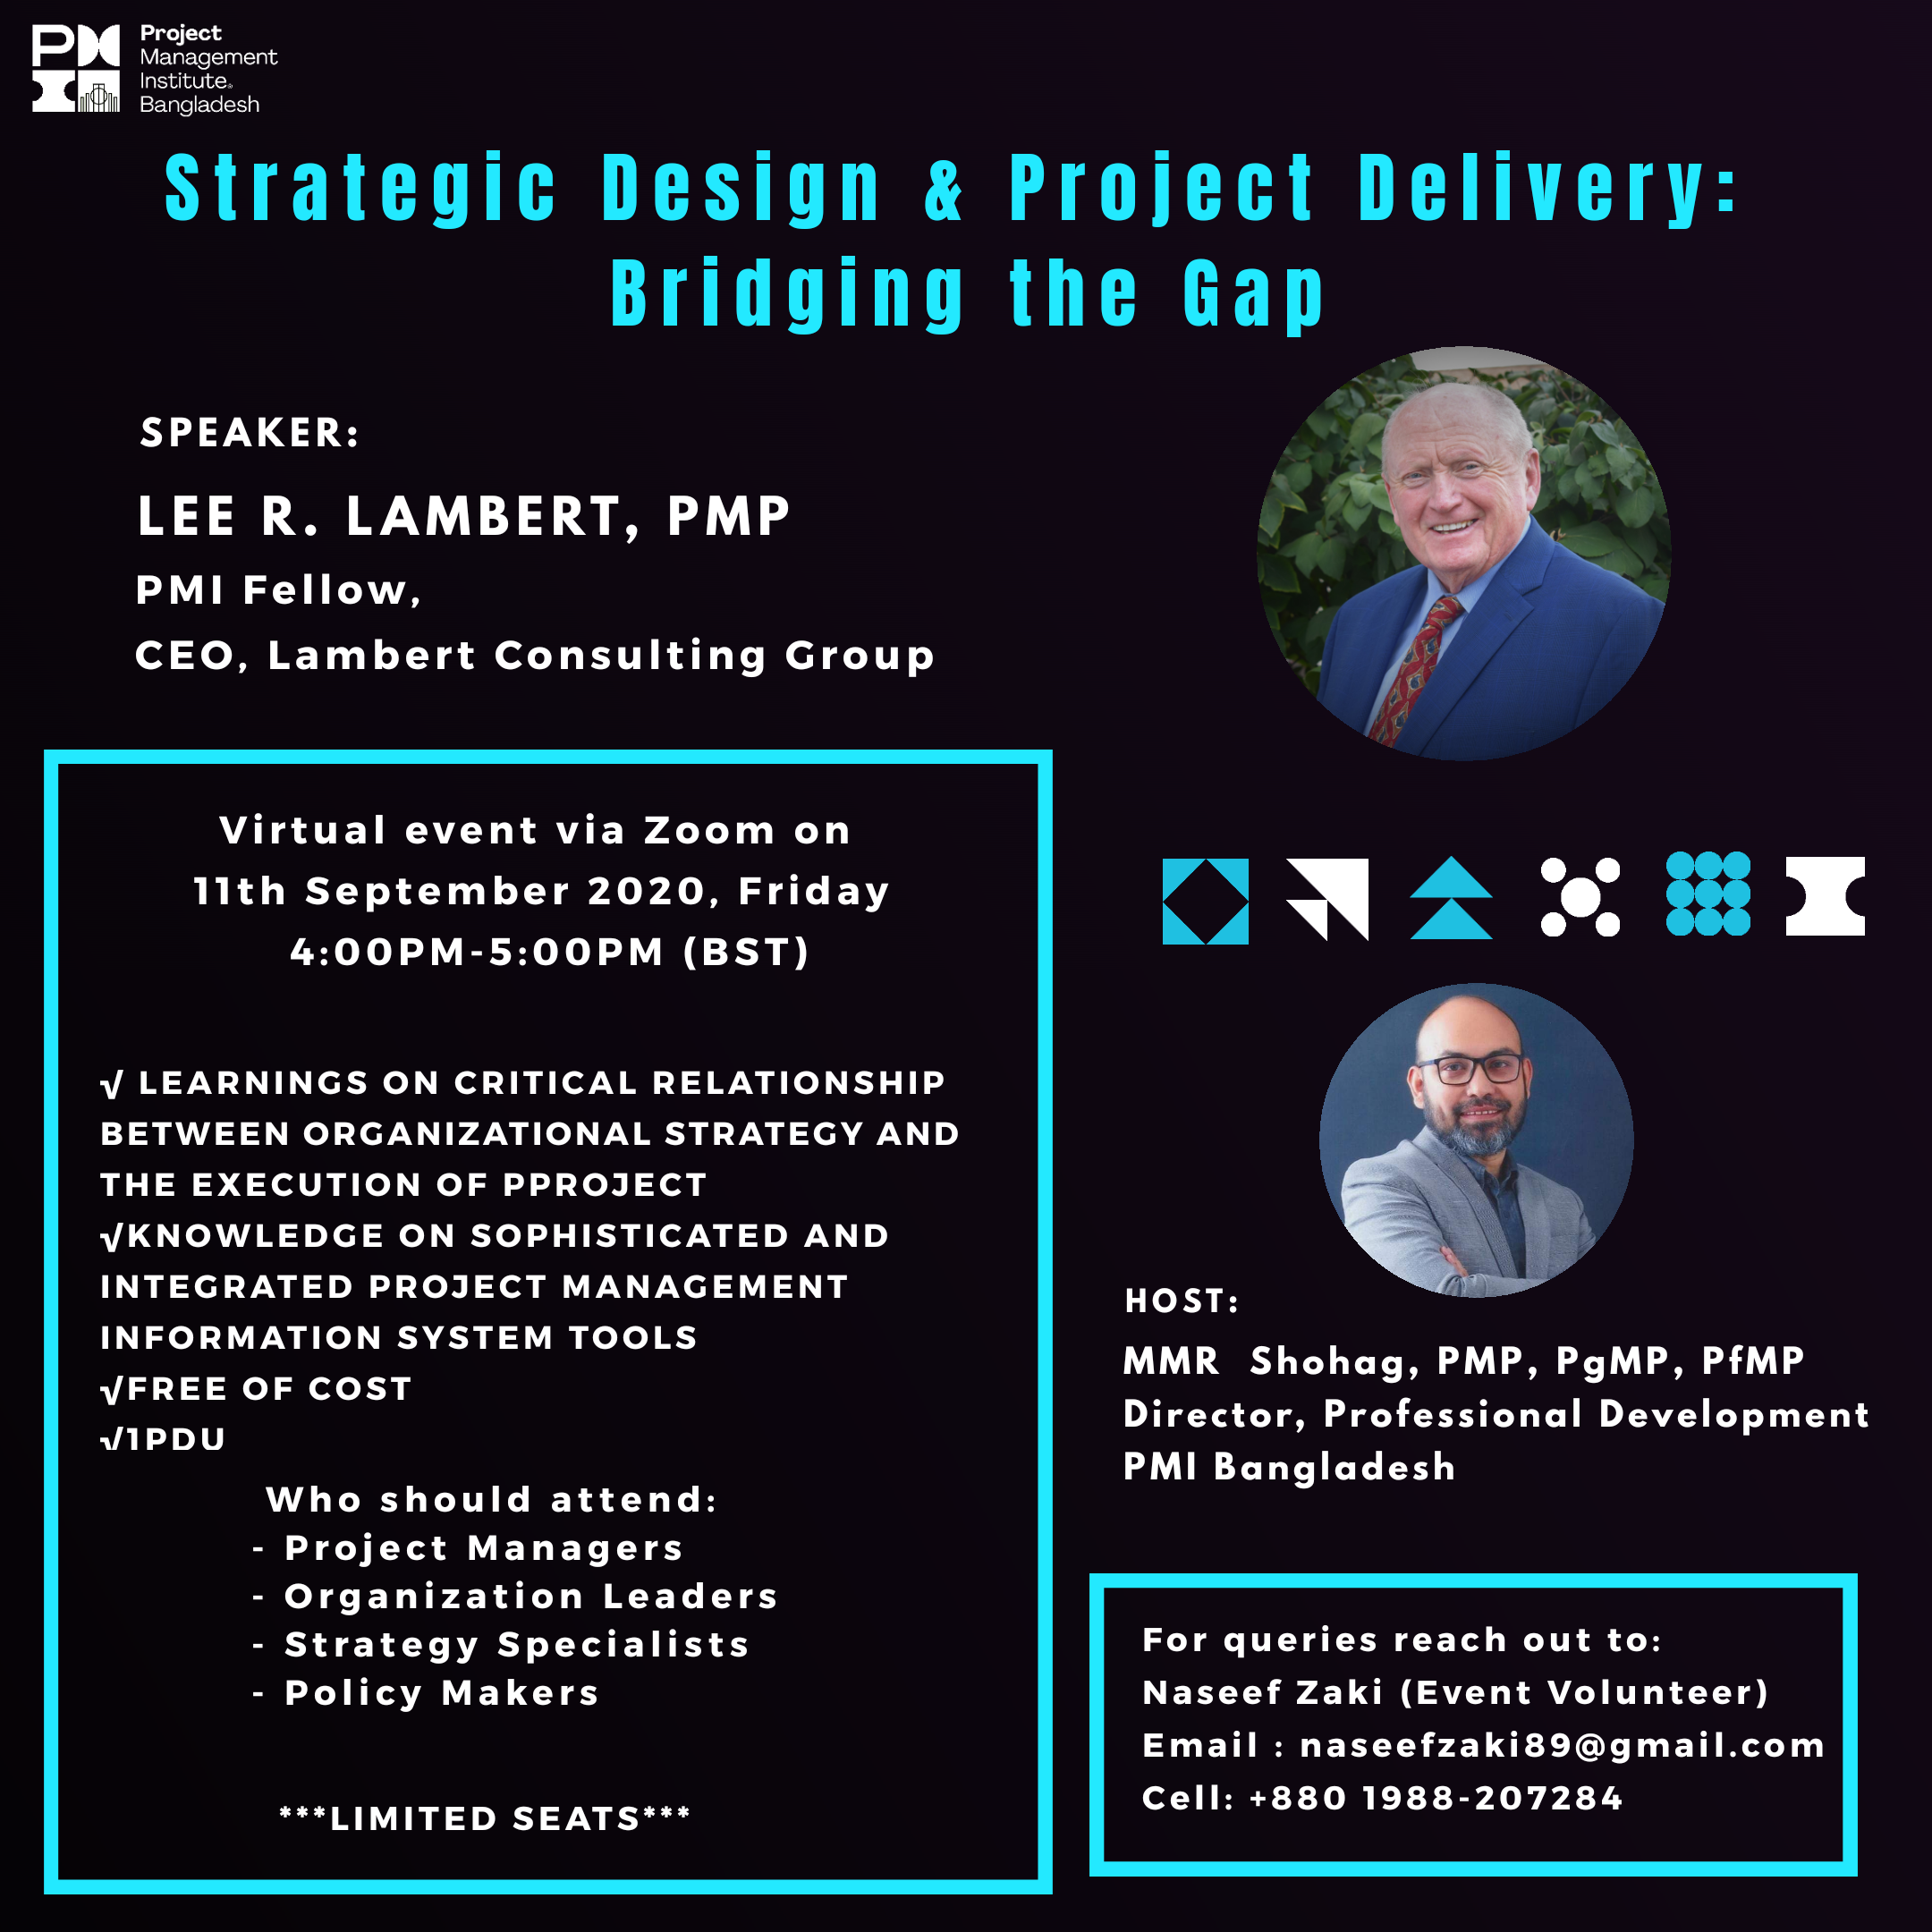 Strategic Design & Project Delivery: Bridging the Gap @ Virtual Event